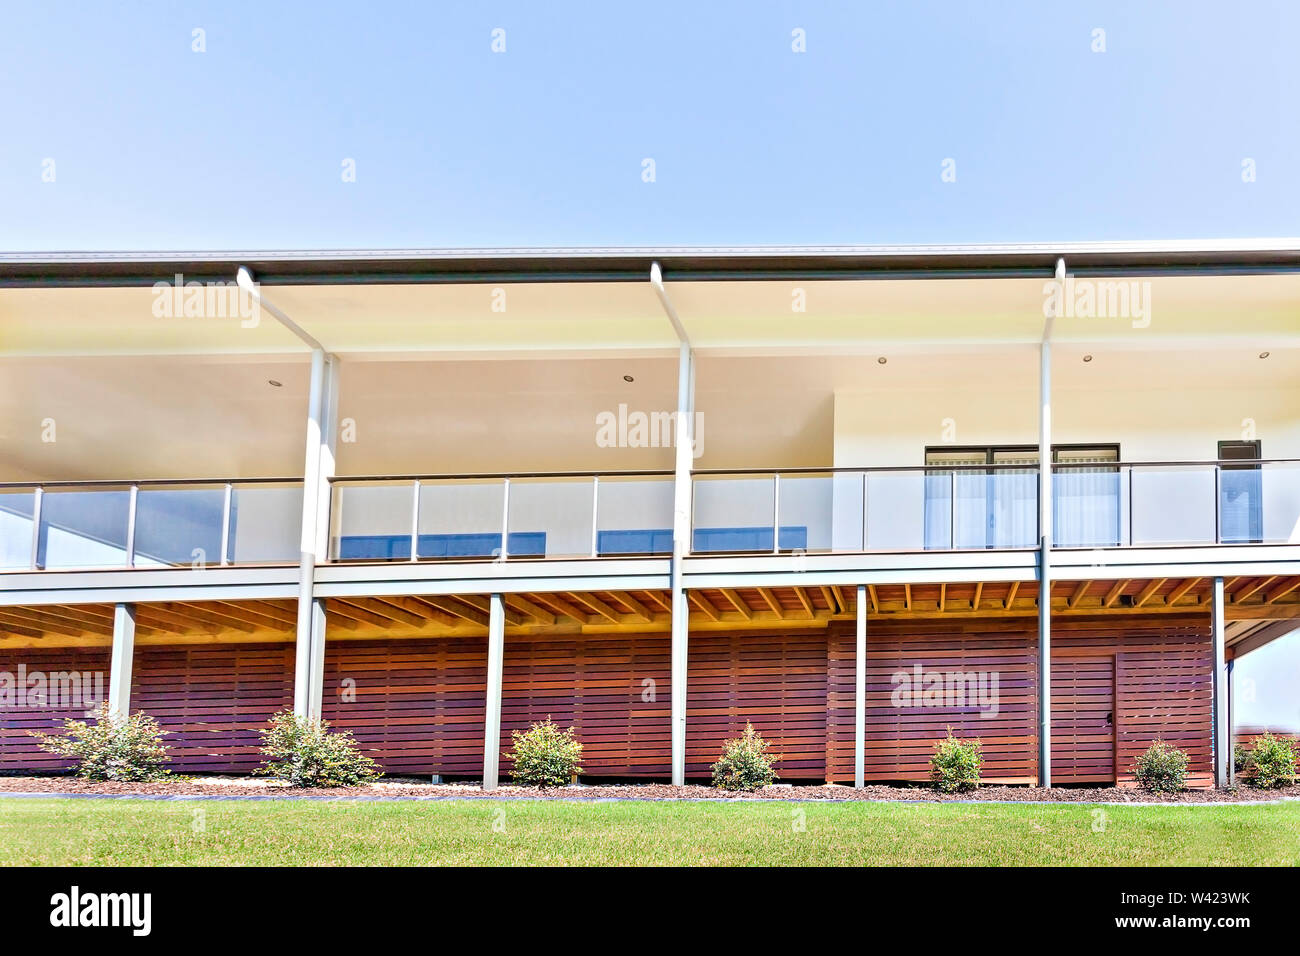 Luxurious House Design And Colors With Grass Ground House Walls Have Made With Woods Sky Is Very Clear With Blue Color Daytime Scene With Sun Light Stock Photo Alamy